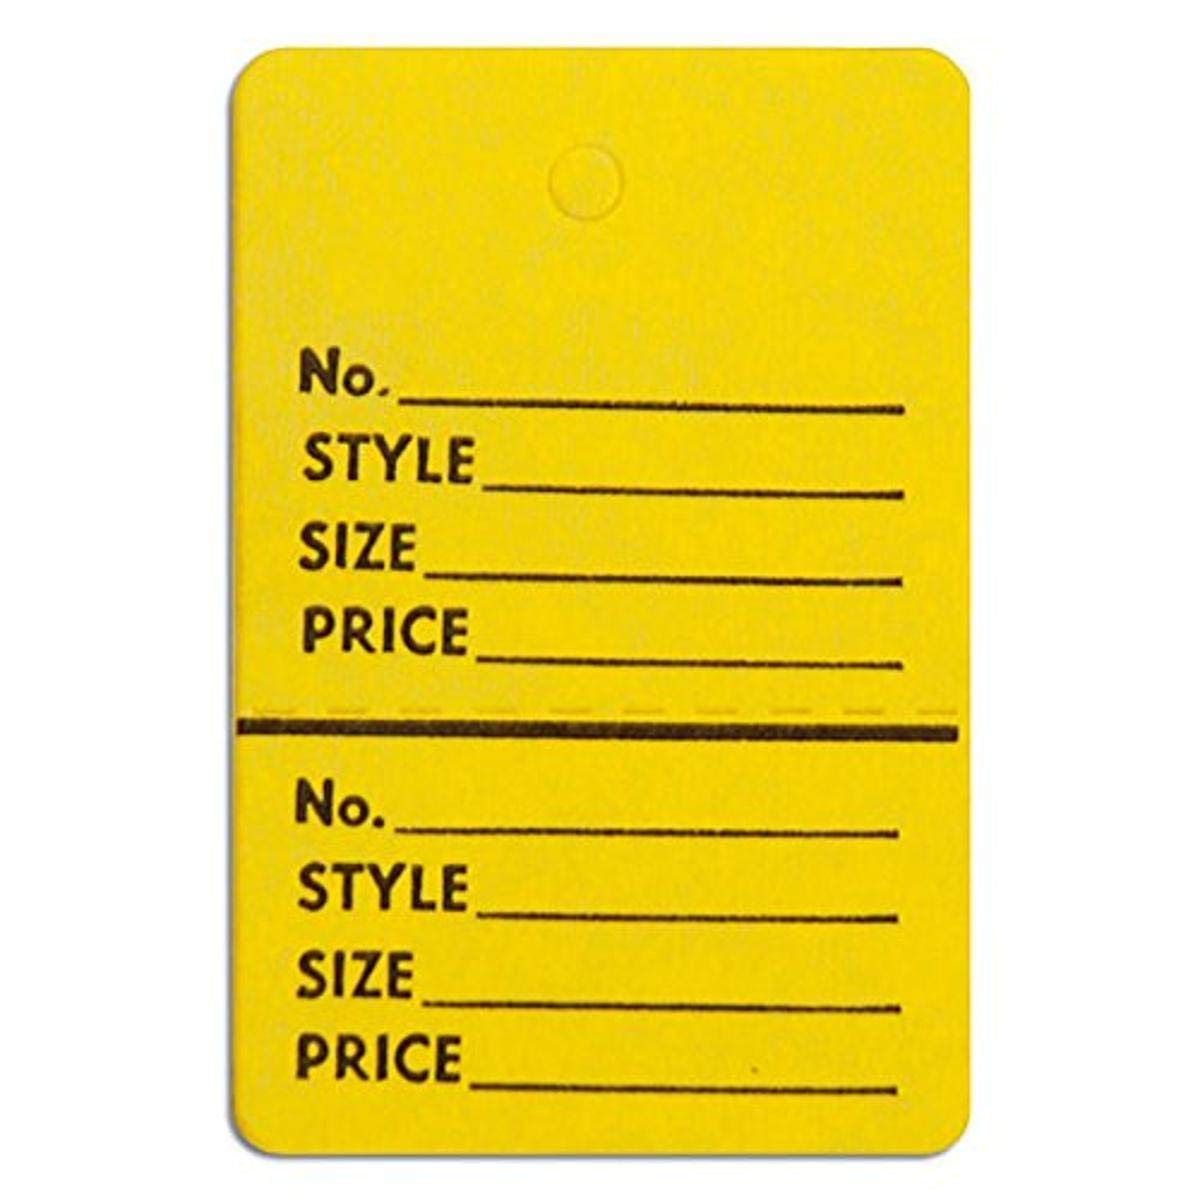 KC Store Fixtures 09106 Perforated Tags Selling rankings Max 42% OFF Merchandise without Stri